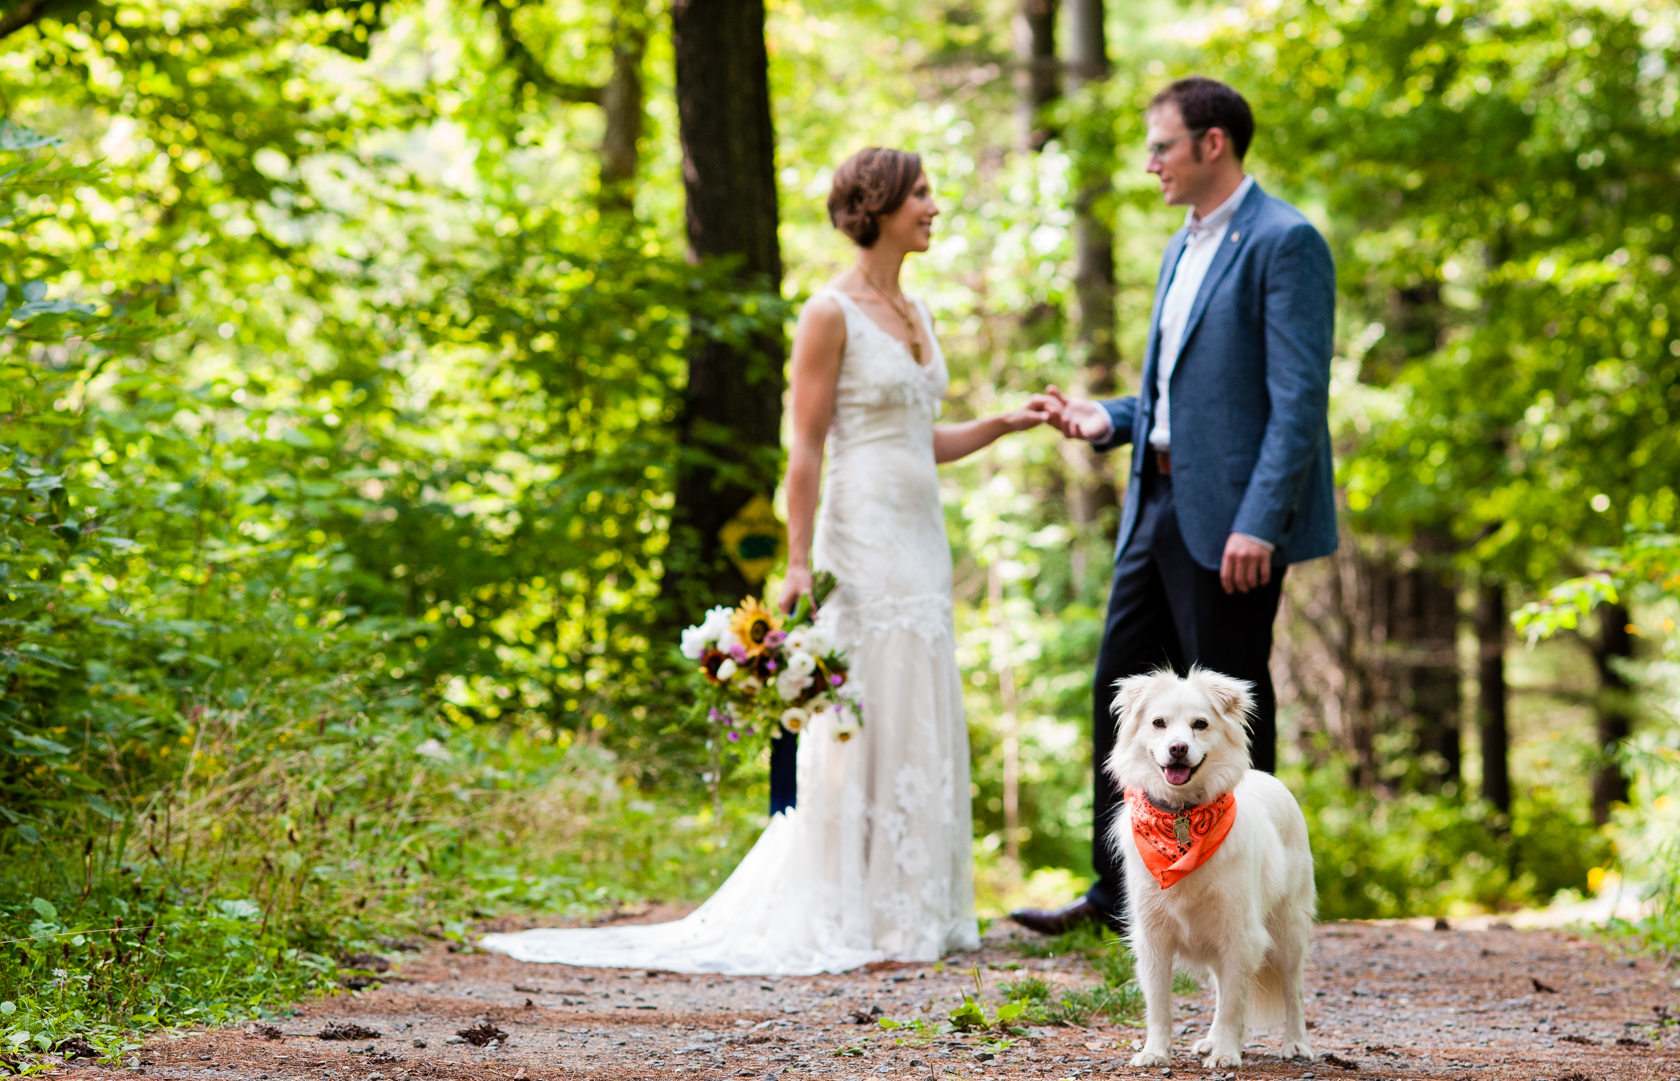 adorable dog stands on a wooded path with bride and groom